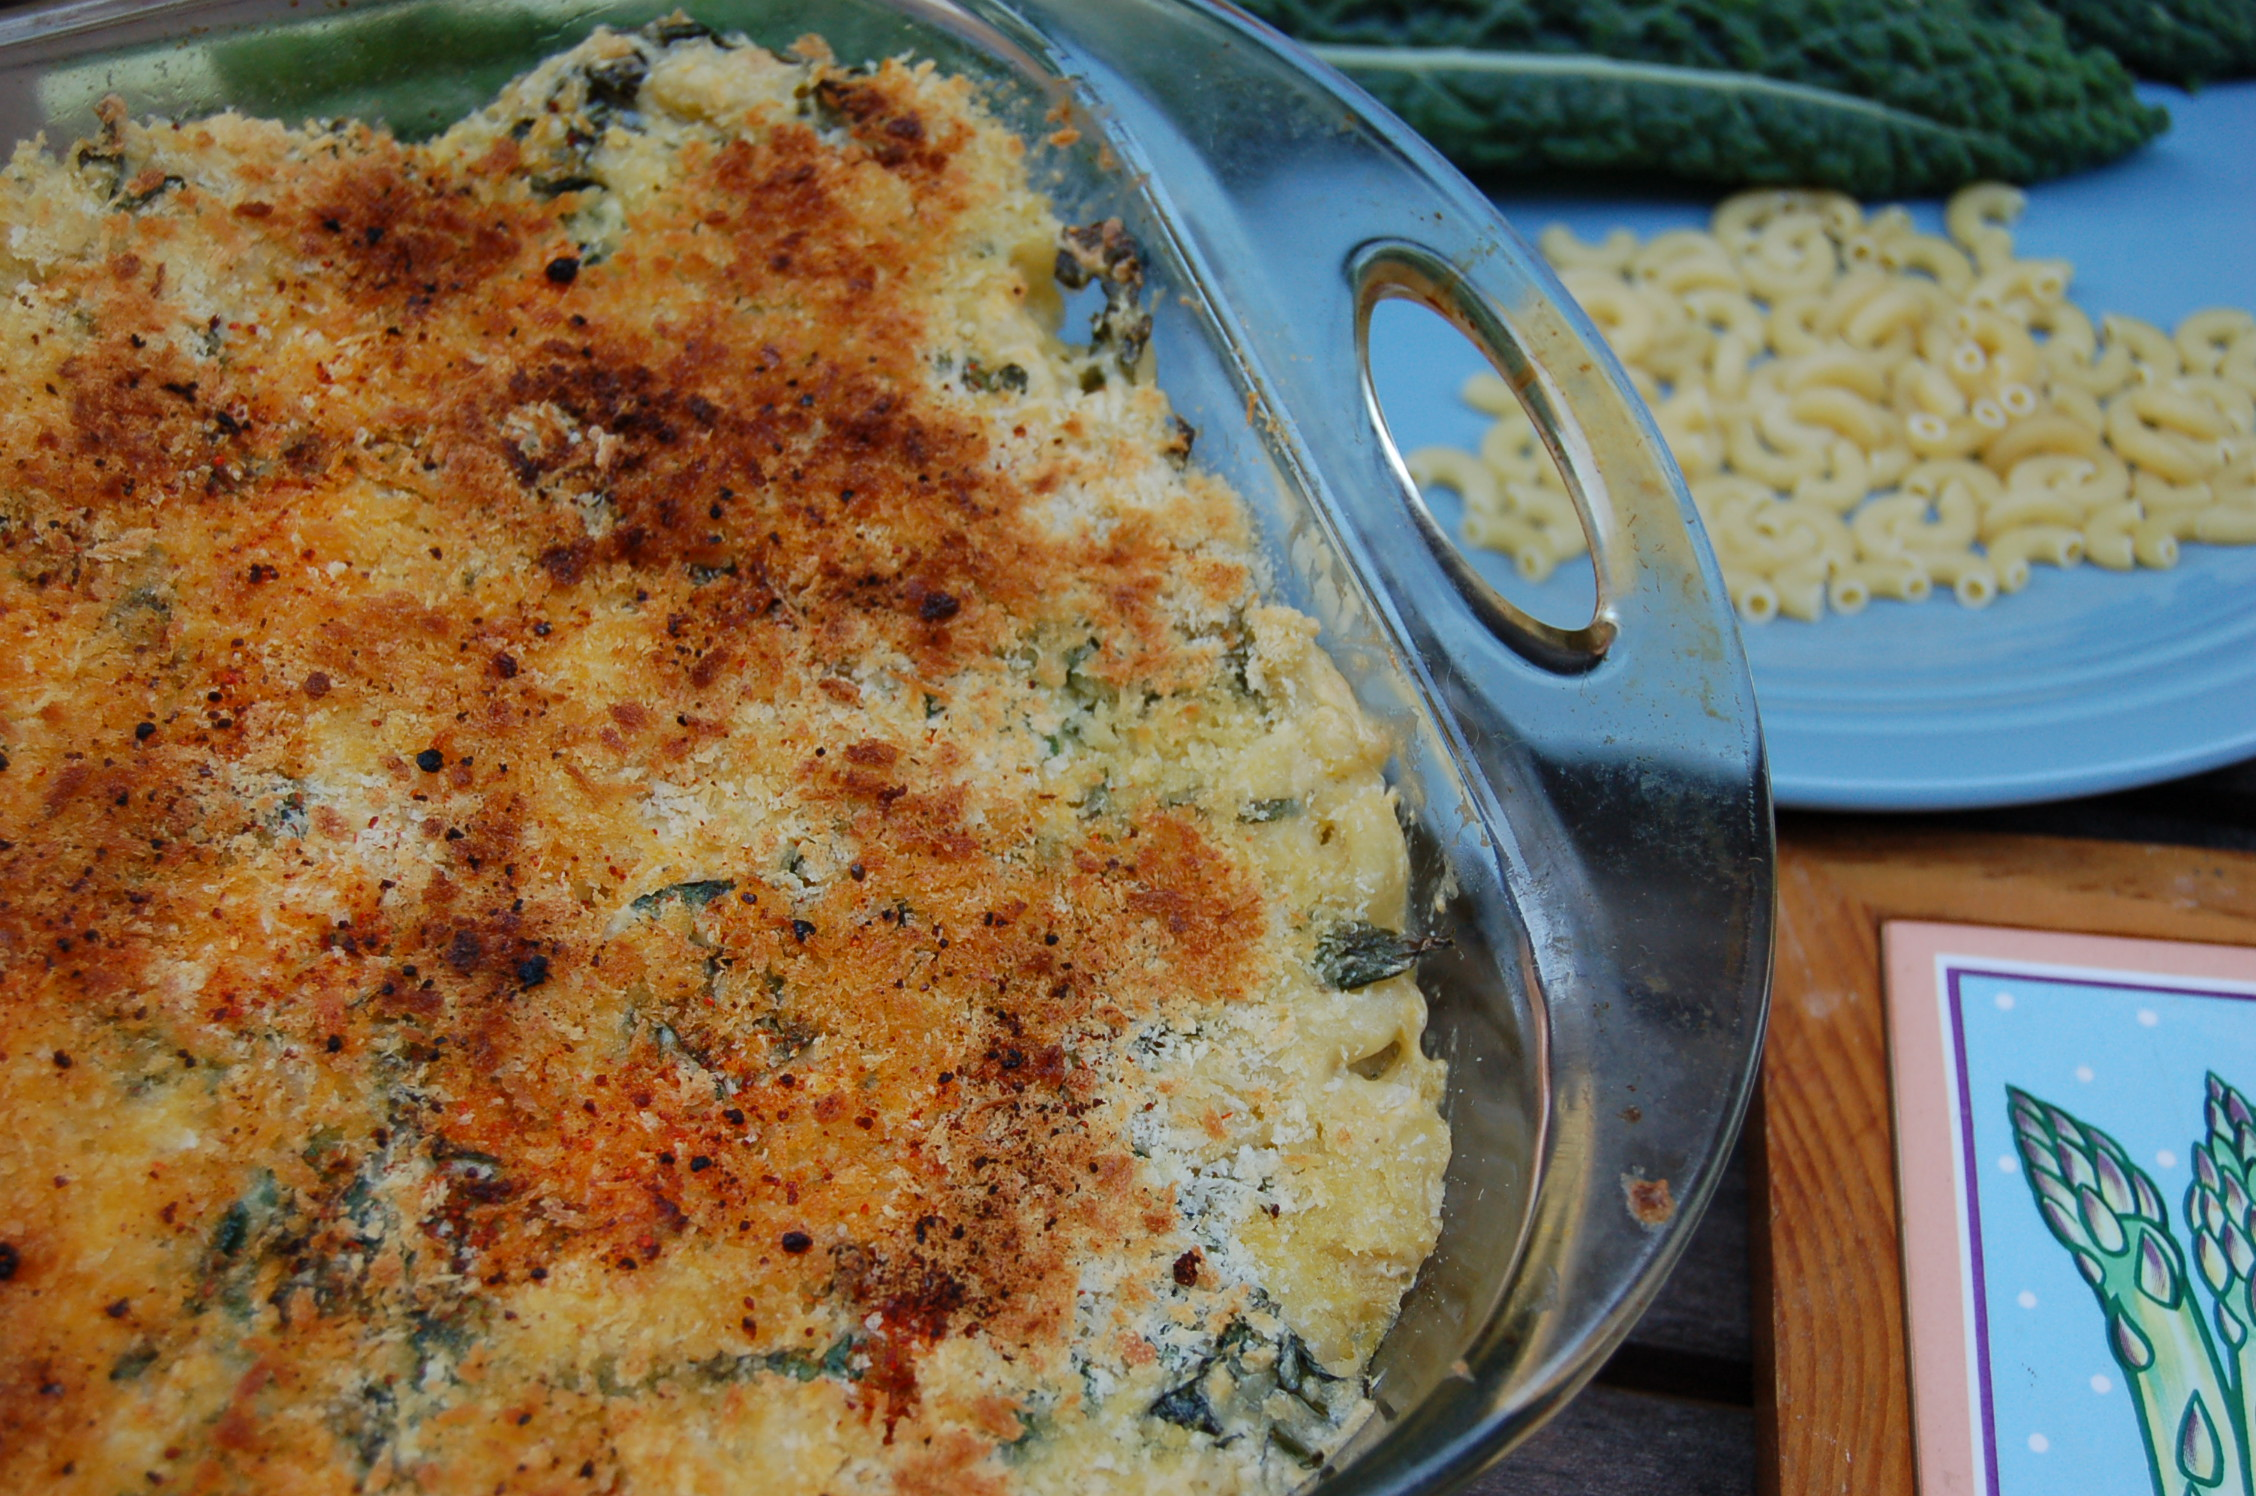 Vegan Galaxy Cheese Used in Mac and Cheese Recipe